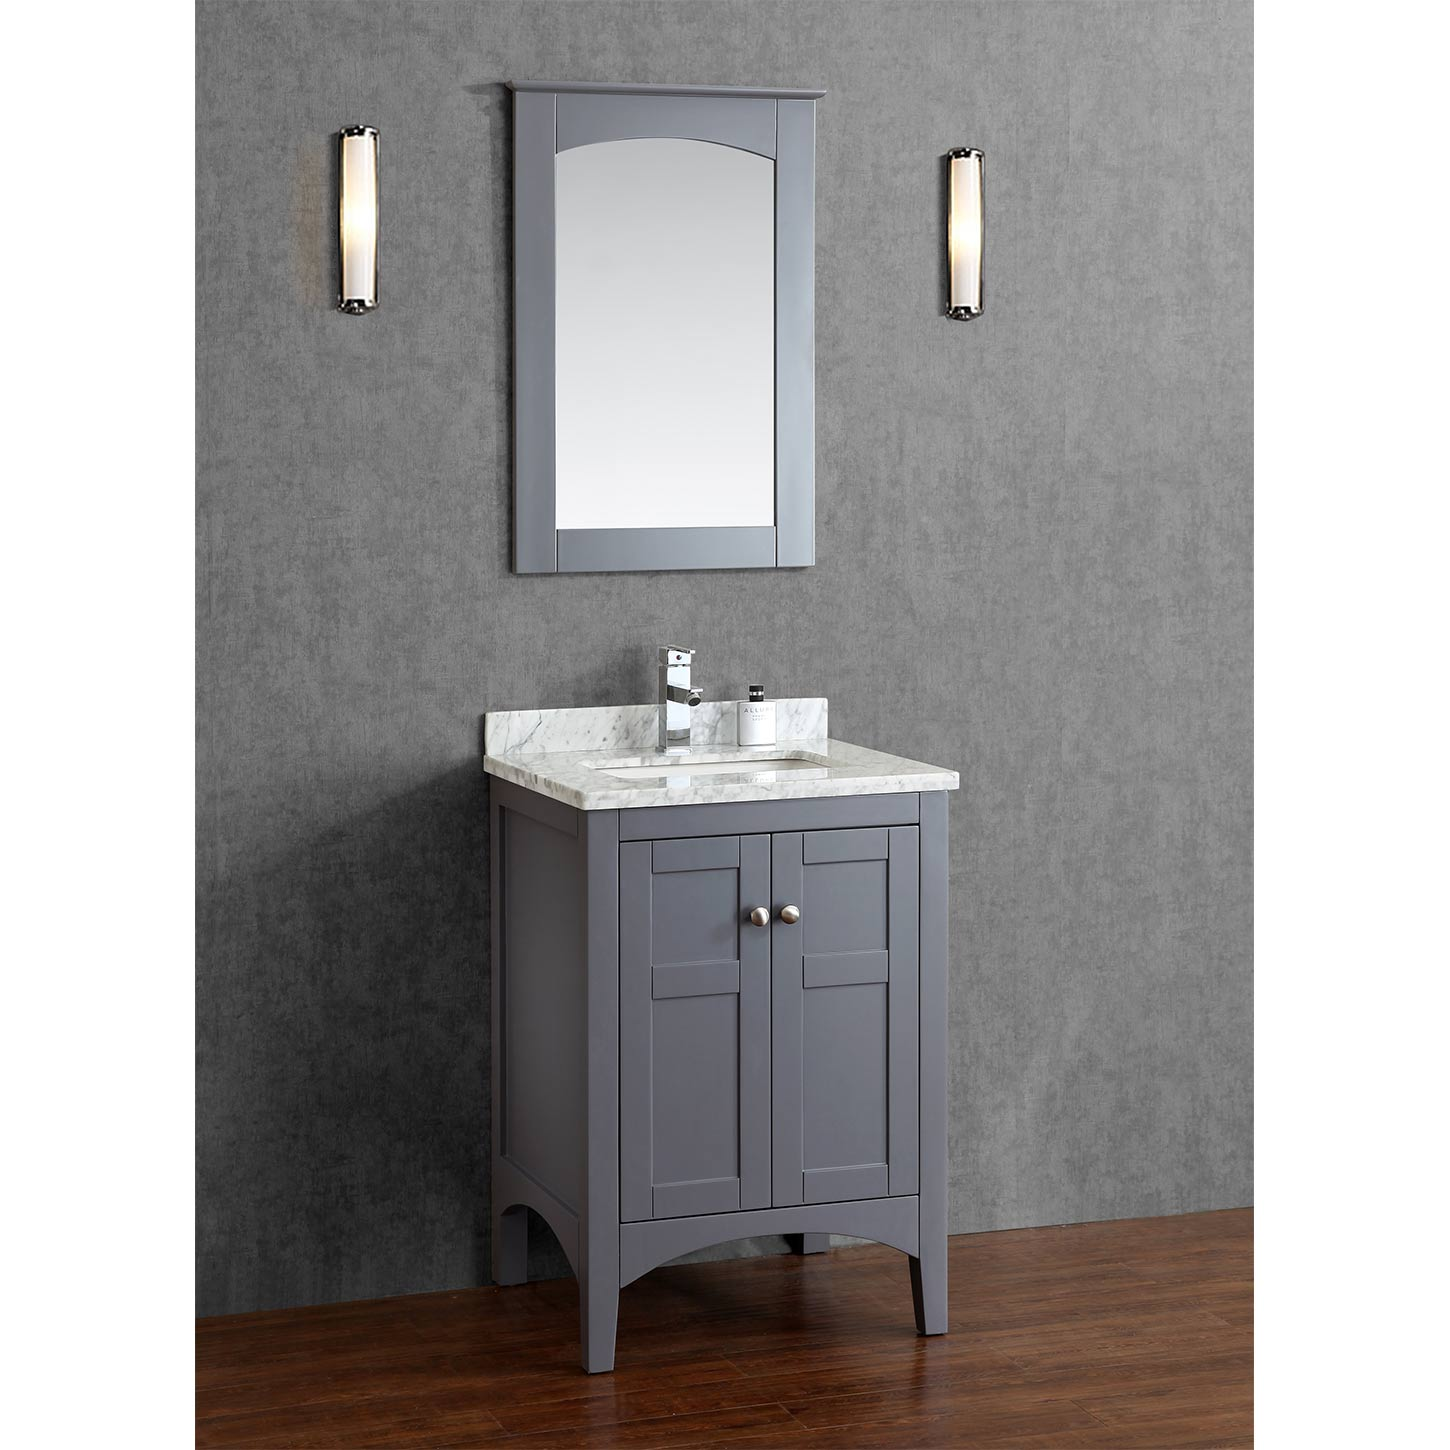 Bathroom Vanities For Less buy martin 24 inch solid wood single bathroom vanity in charcoal